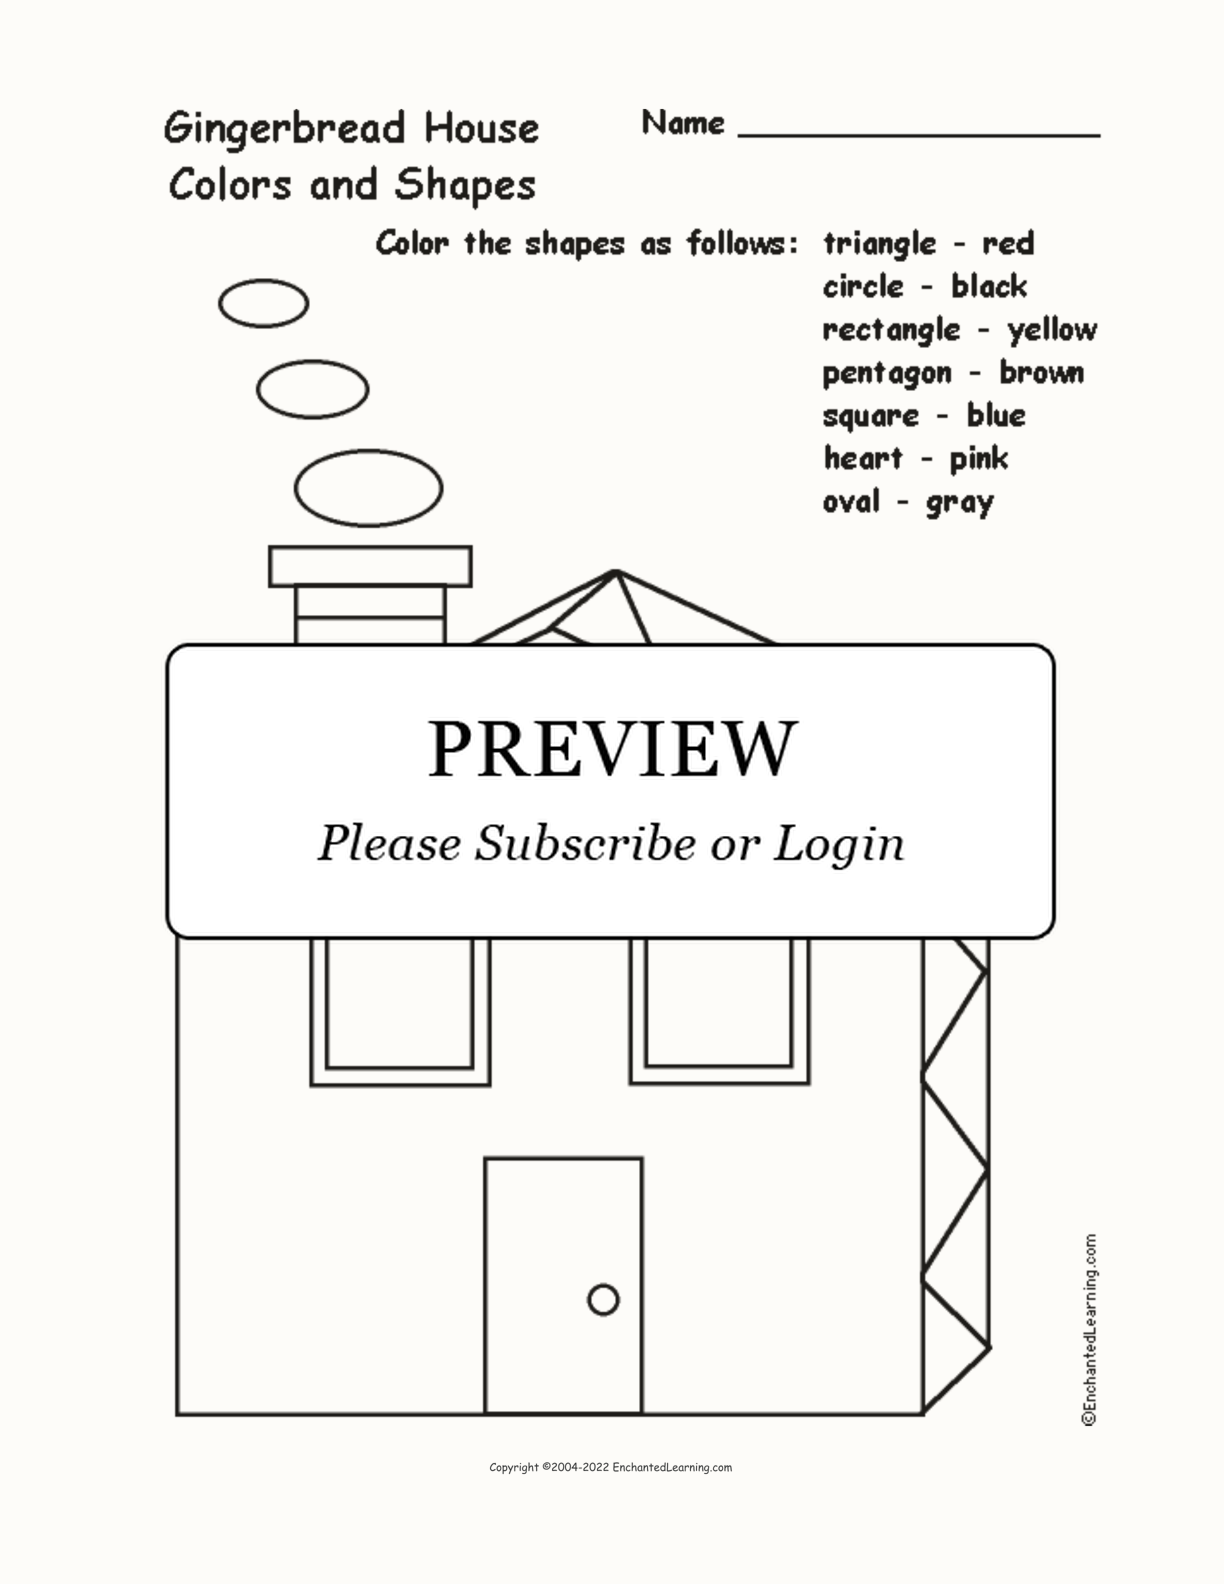 Gingerbread House: Colors and Shapes interactive worksheet page 1